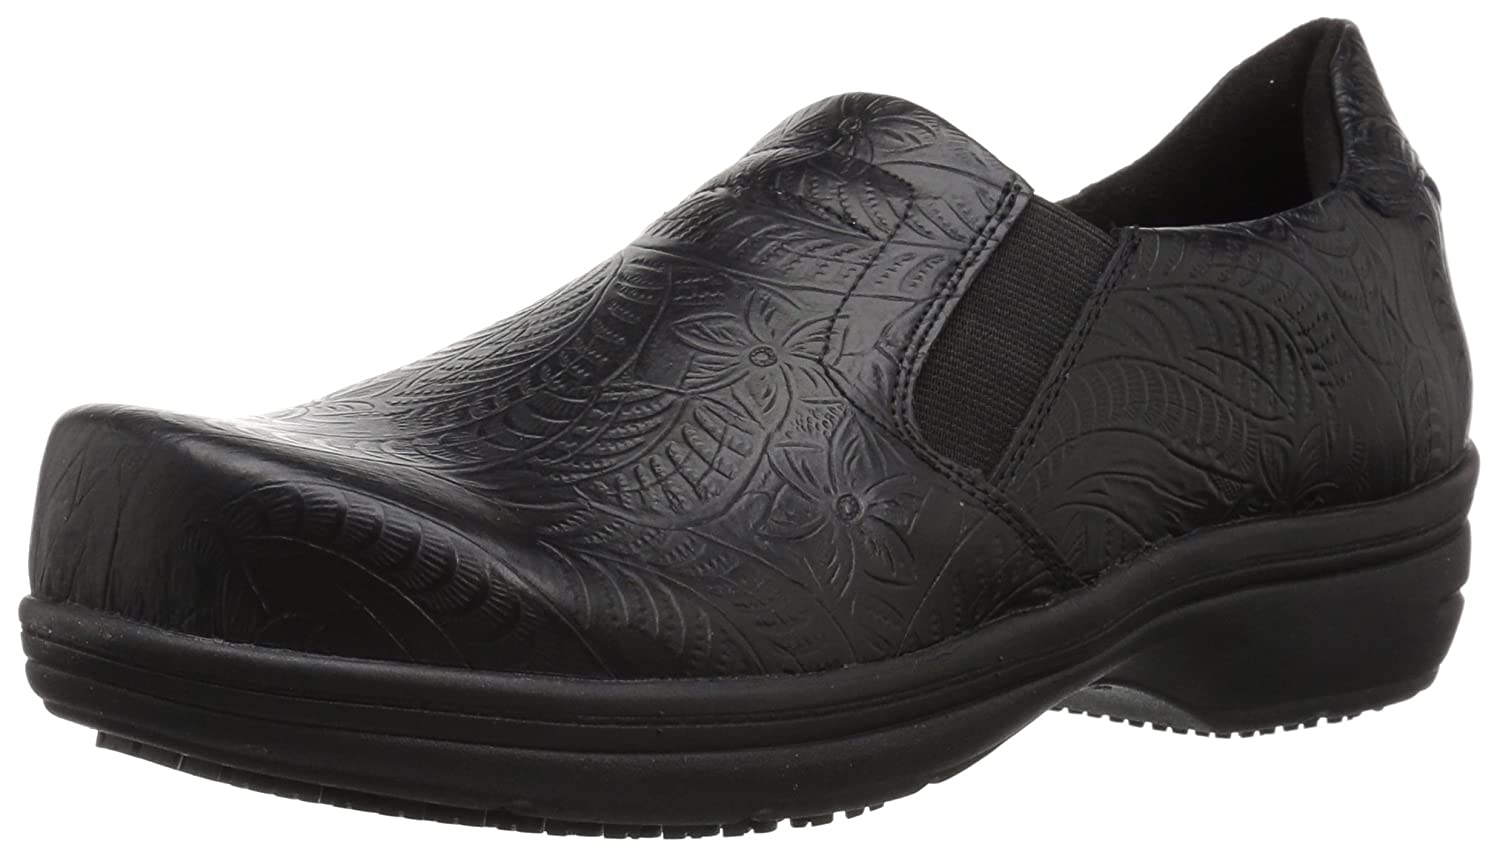 Easy Works レディース BIND Black Embossed 9.5 2W US 9.5 2W USBlack Embossed B075M7L8N5